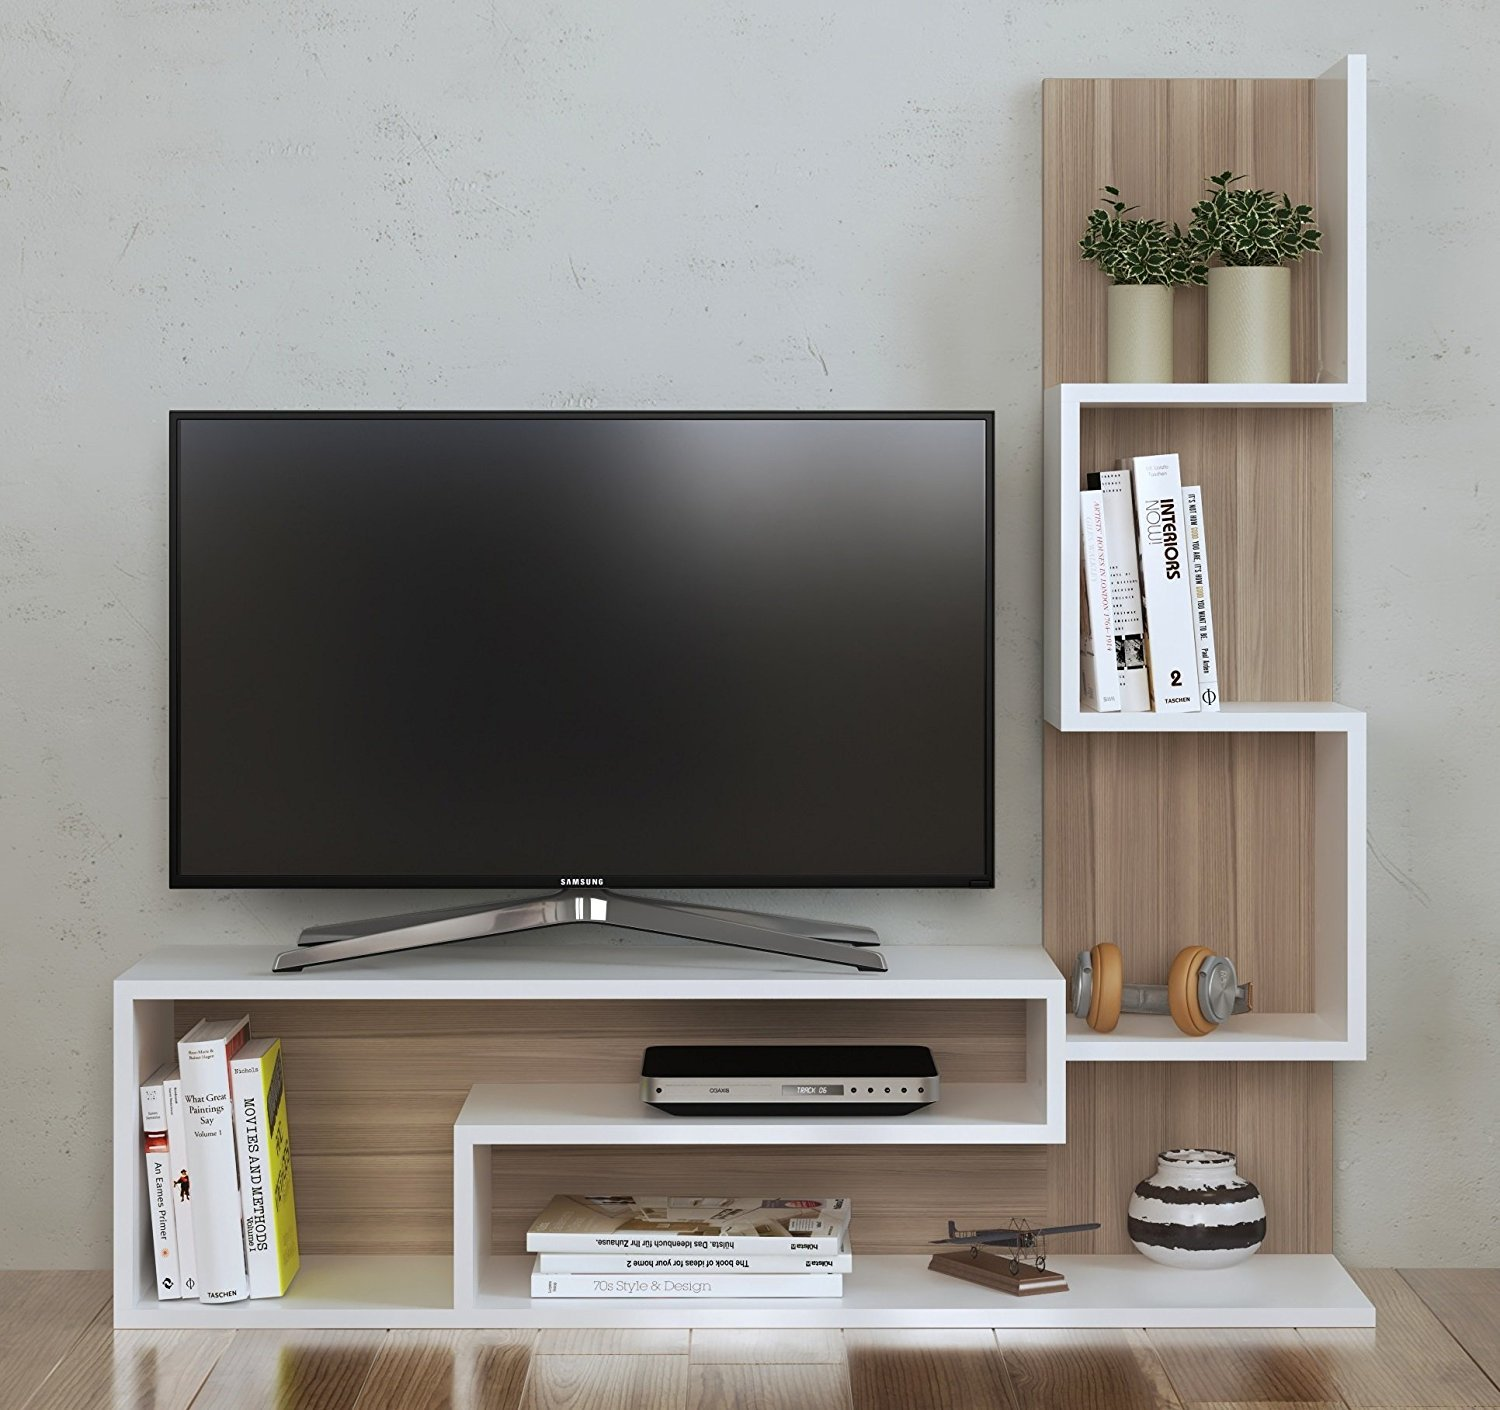 Mimosa Wall Unit Tv Lowboard Tv Stand Living Room Furniture  # Meuble Hifi Tv Design